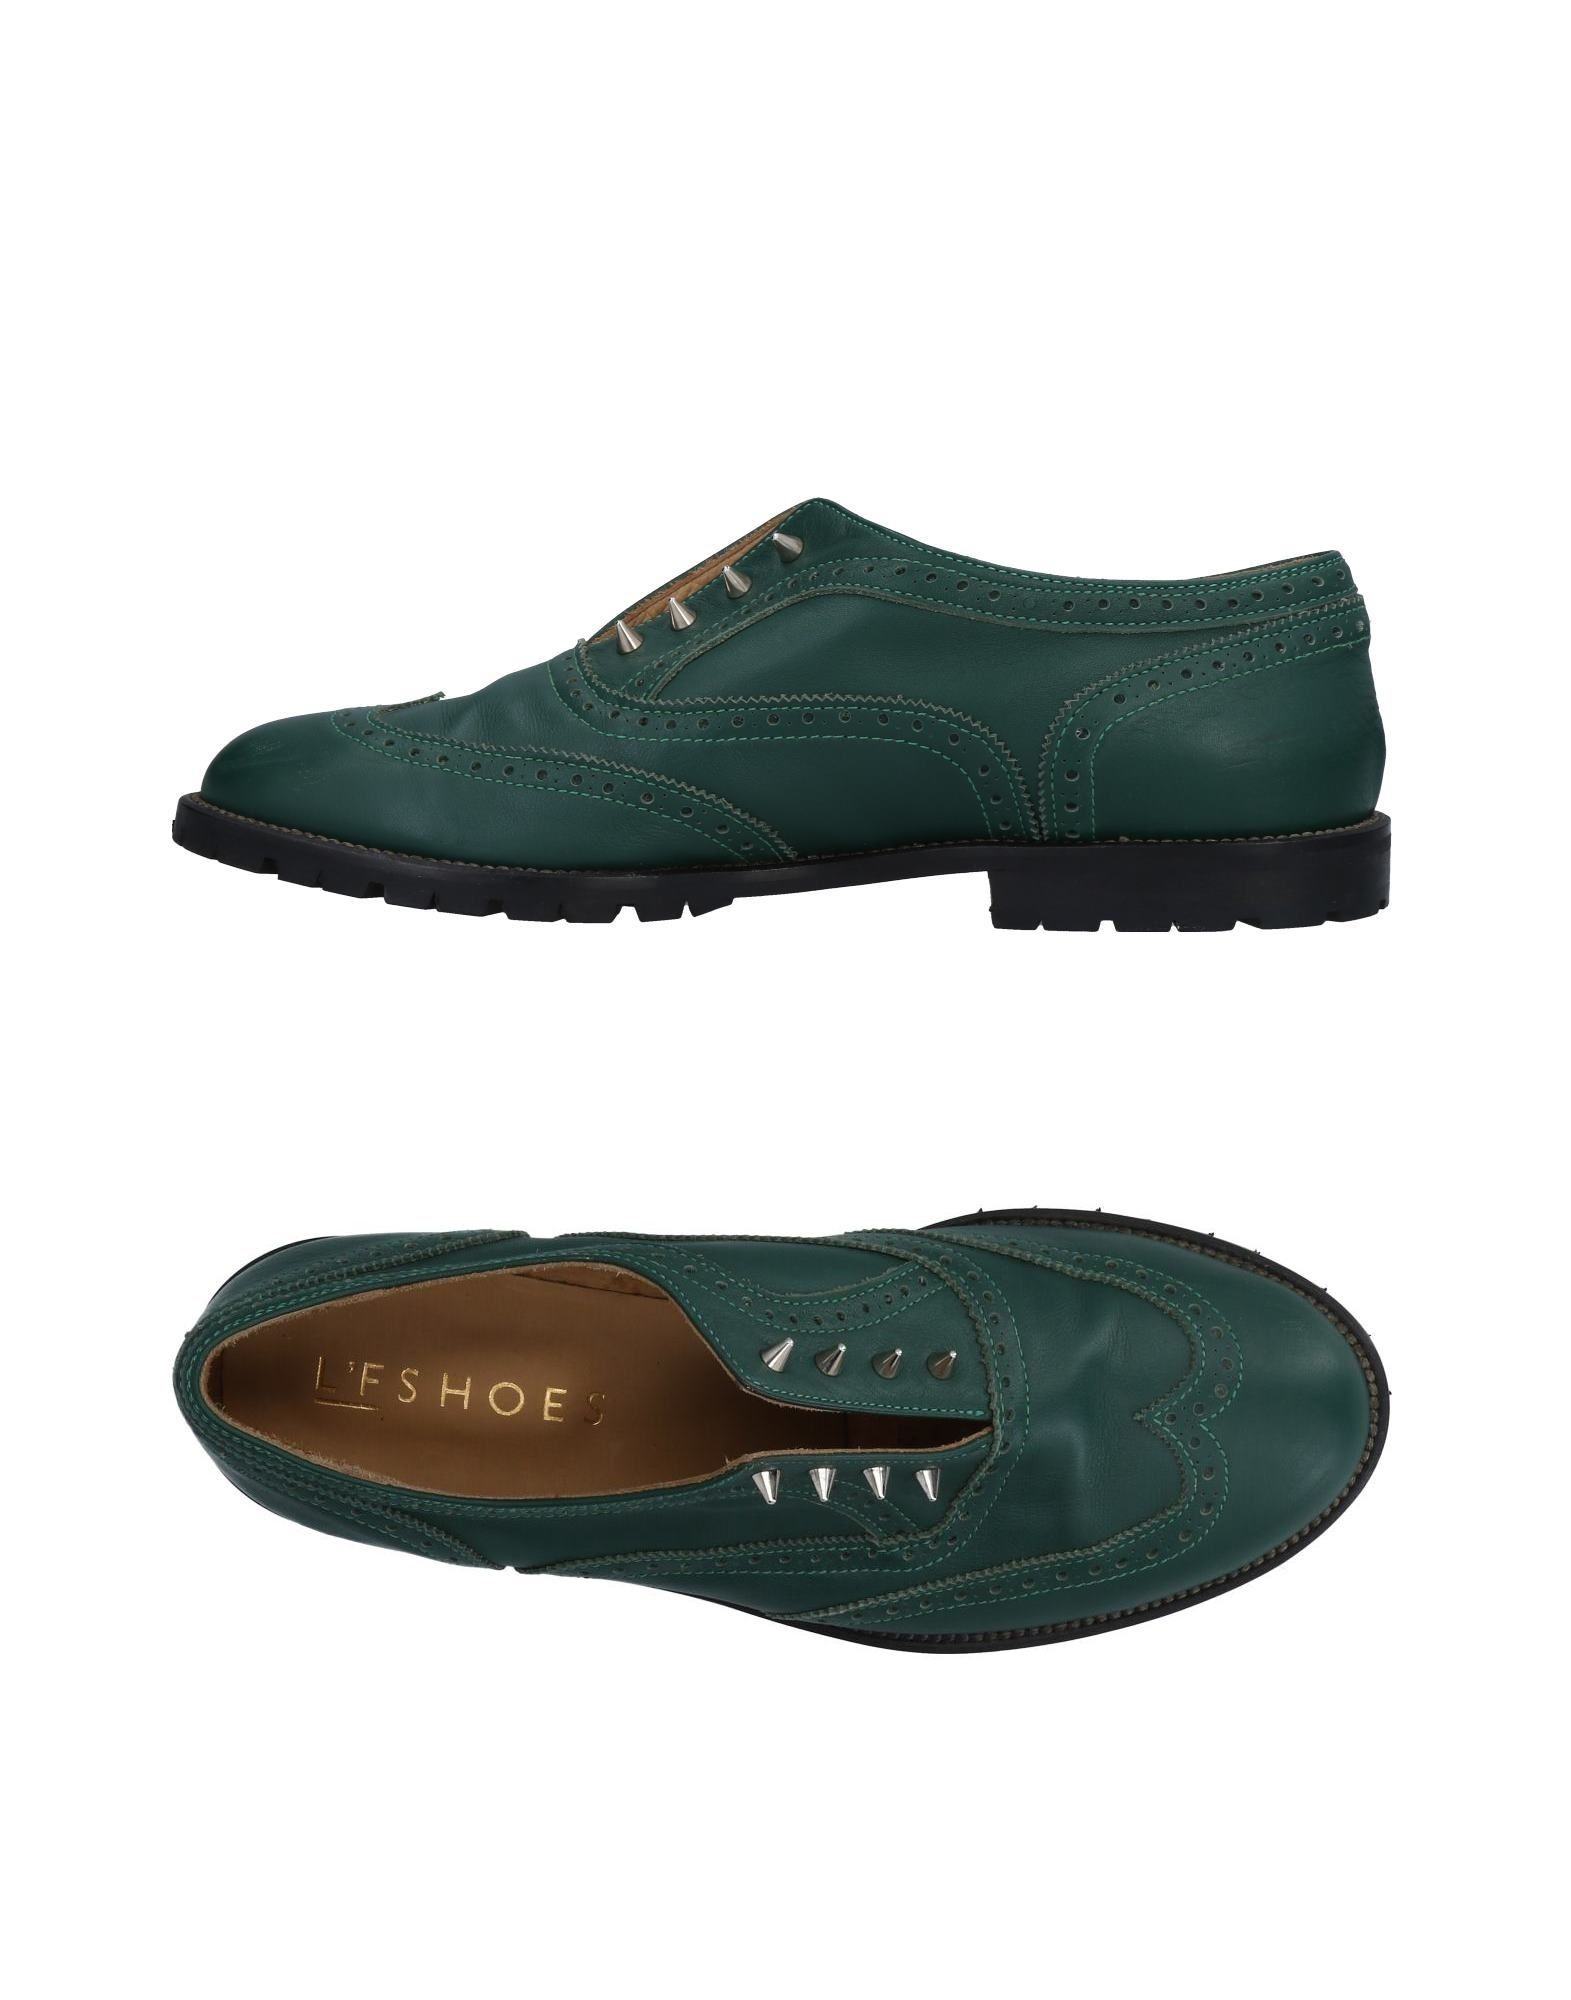 L'F SHOES Loafers in Emerald Green